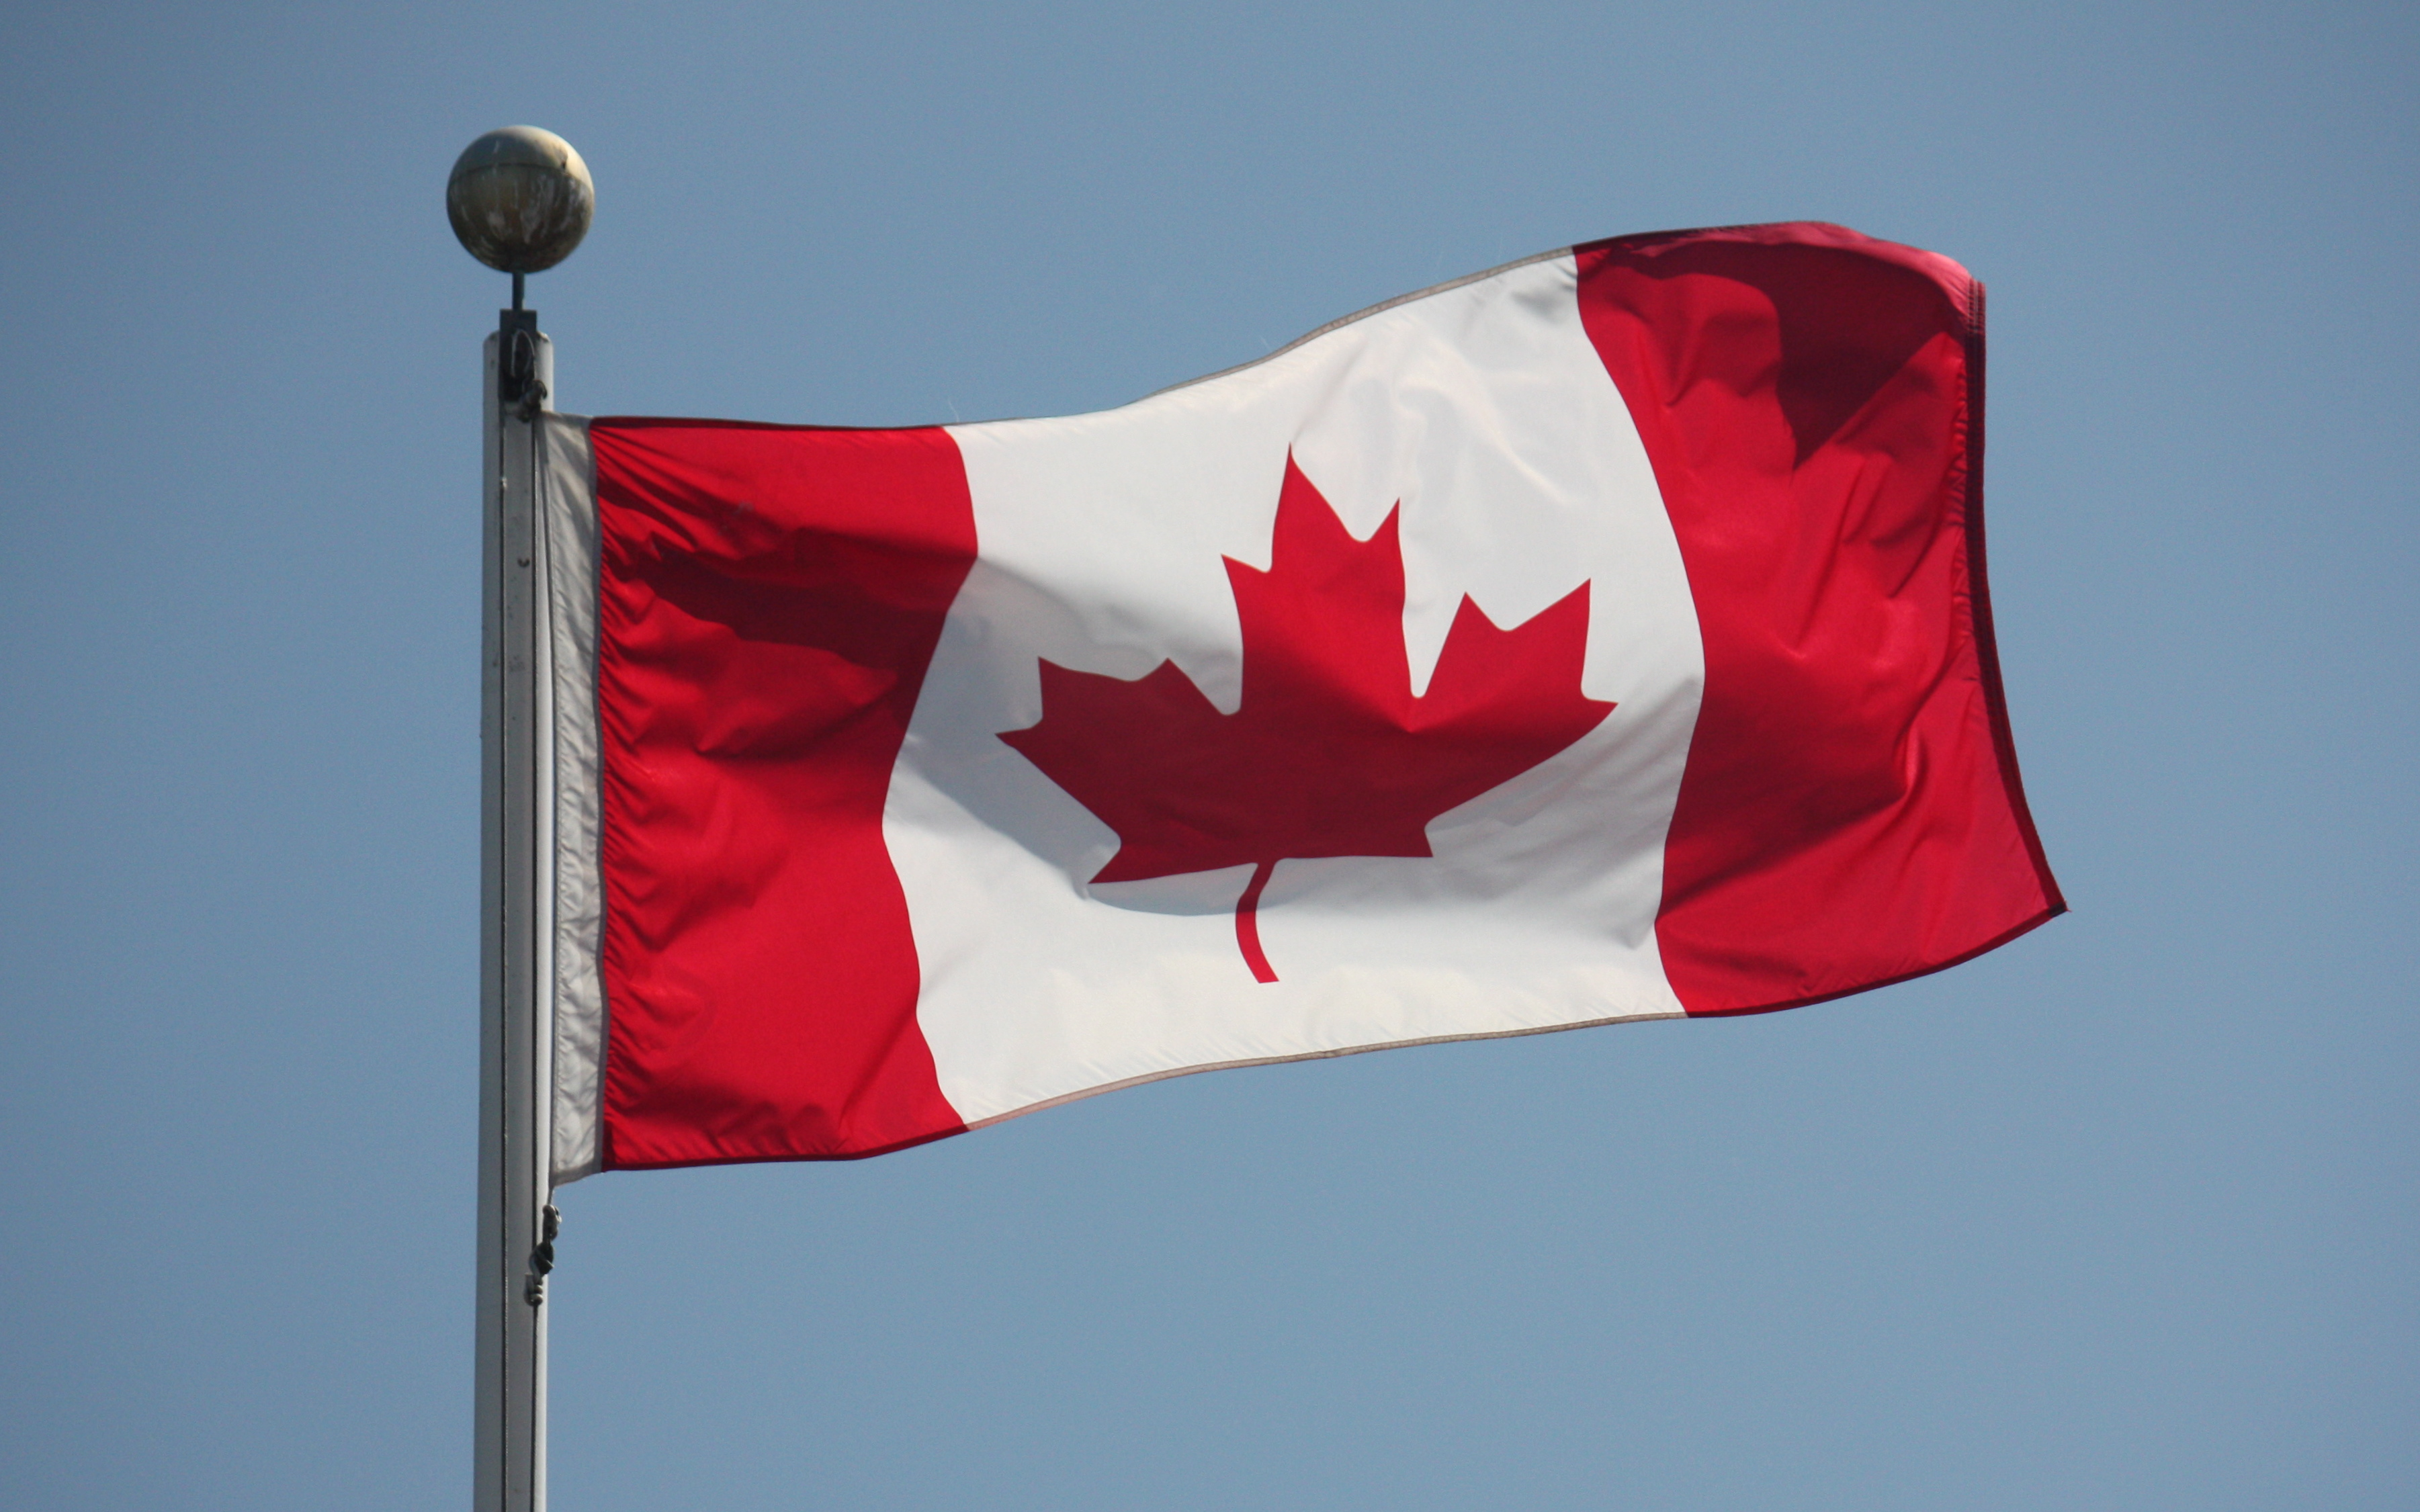 Flag Of Canada Backgrounds on Wallpapers Vista